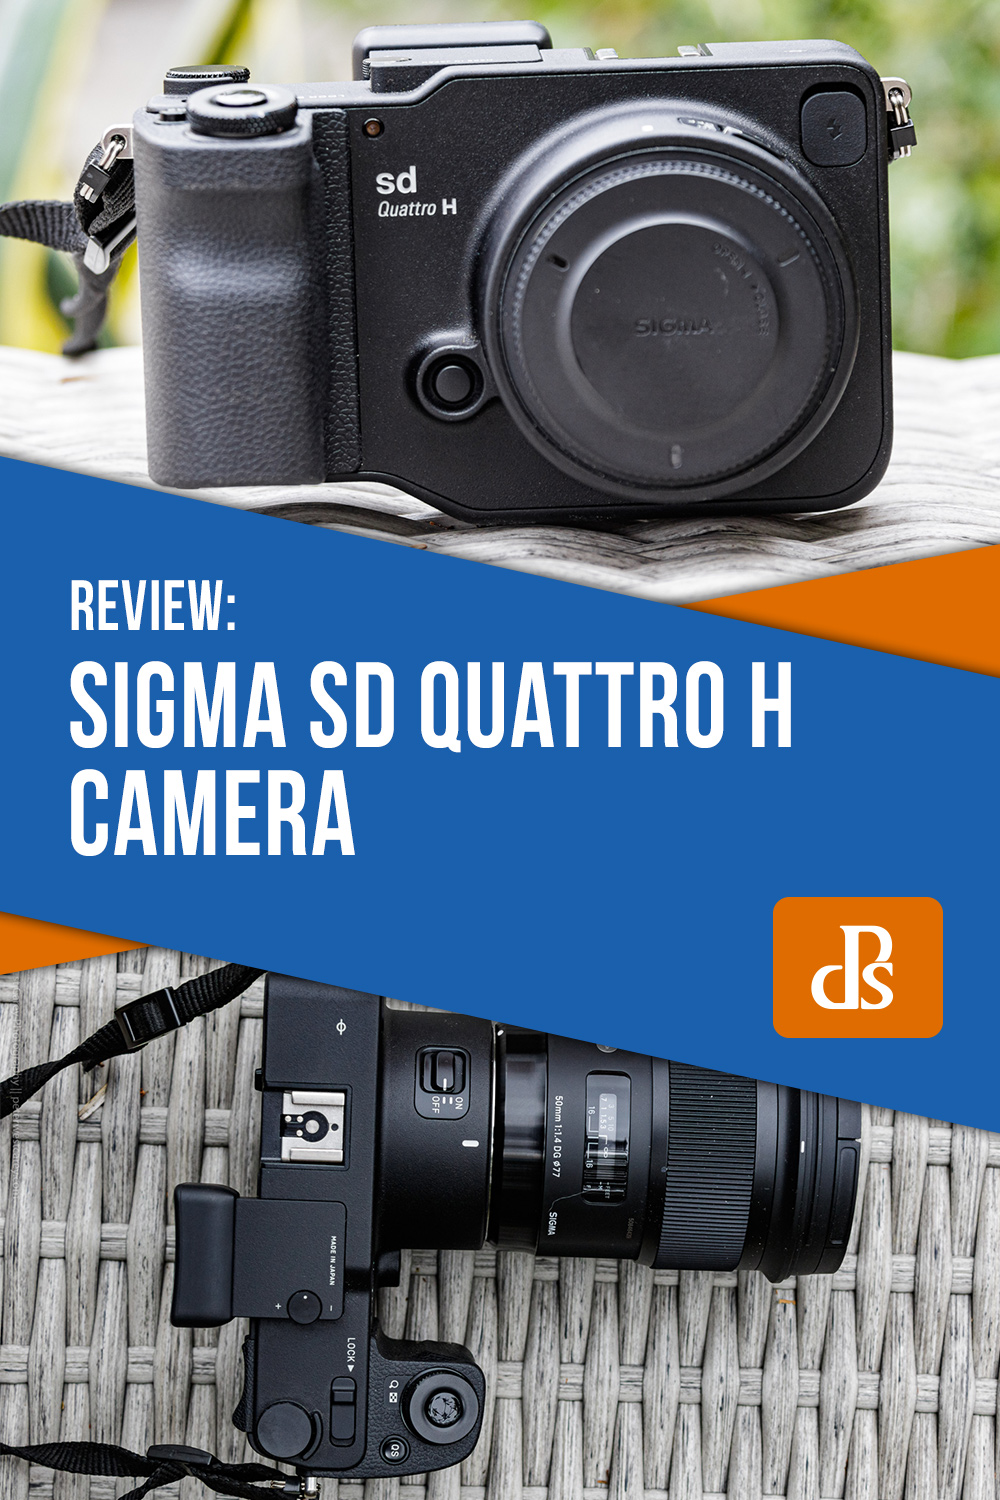 Sigma-sd-Quattro-H-Camera-review